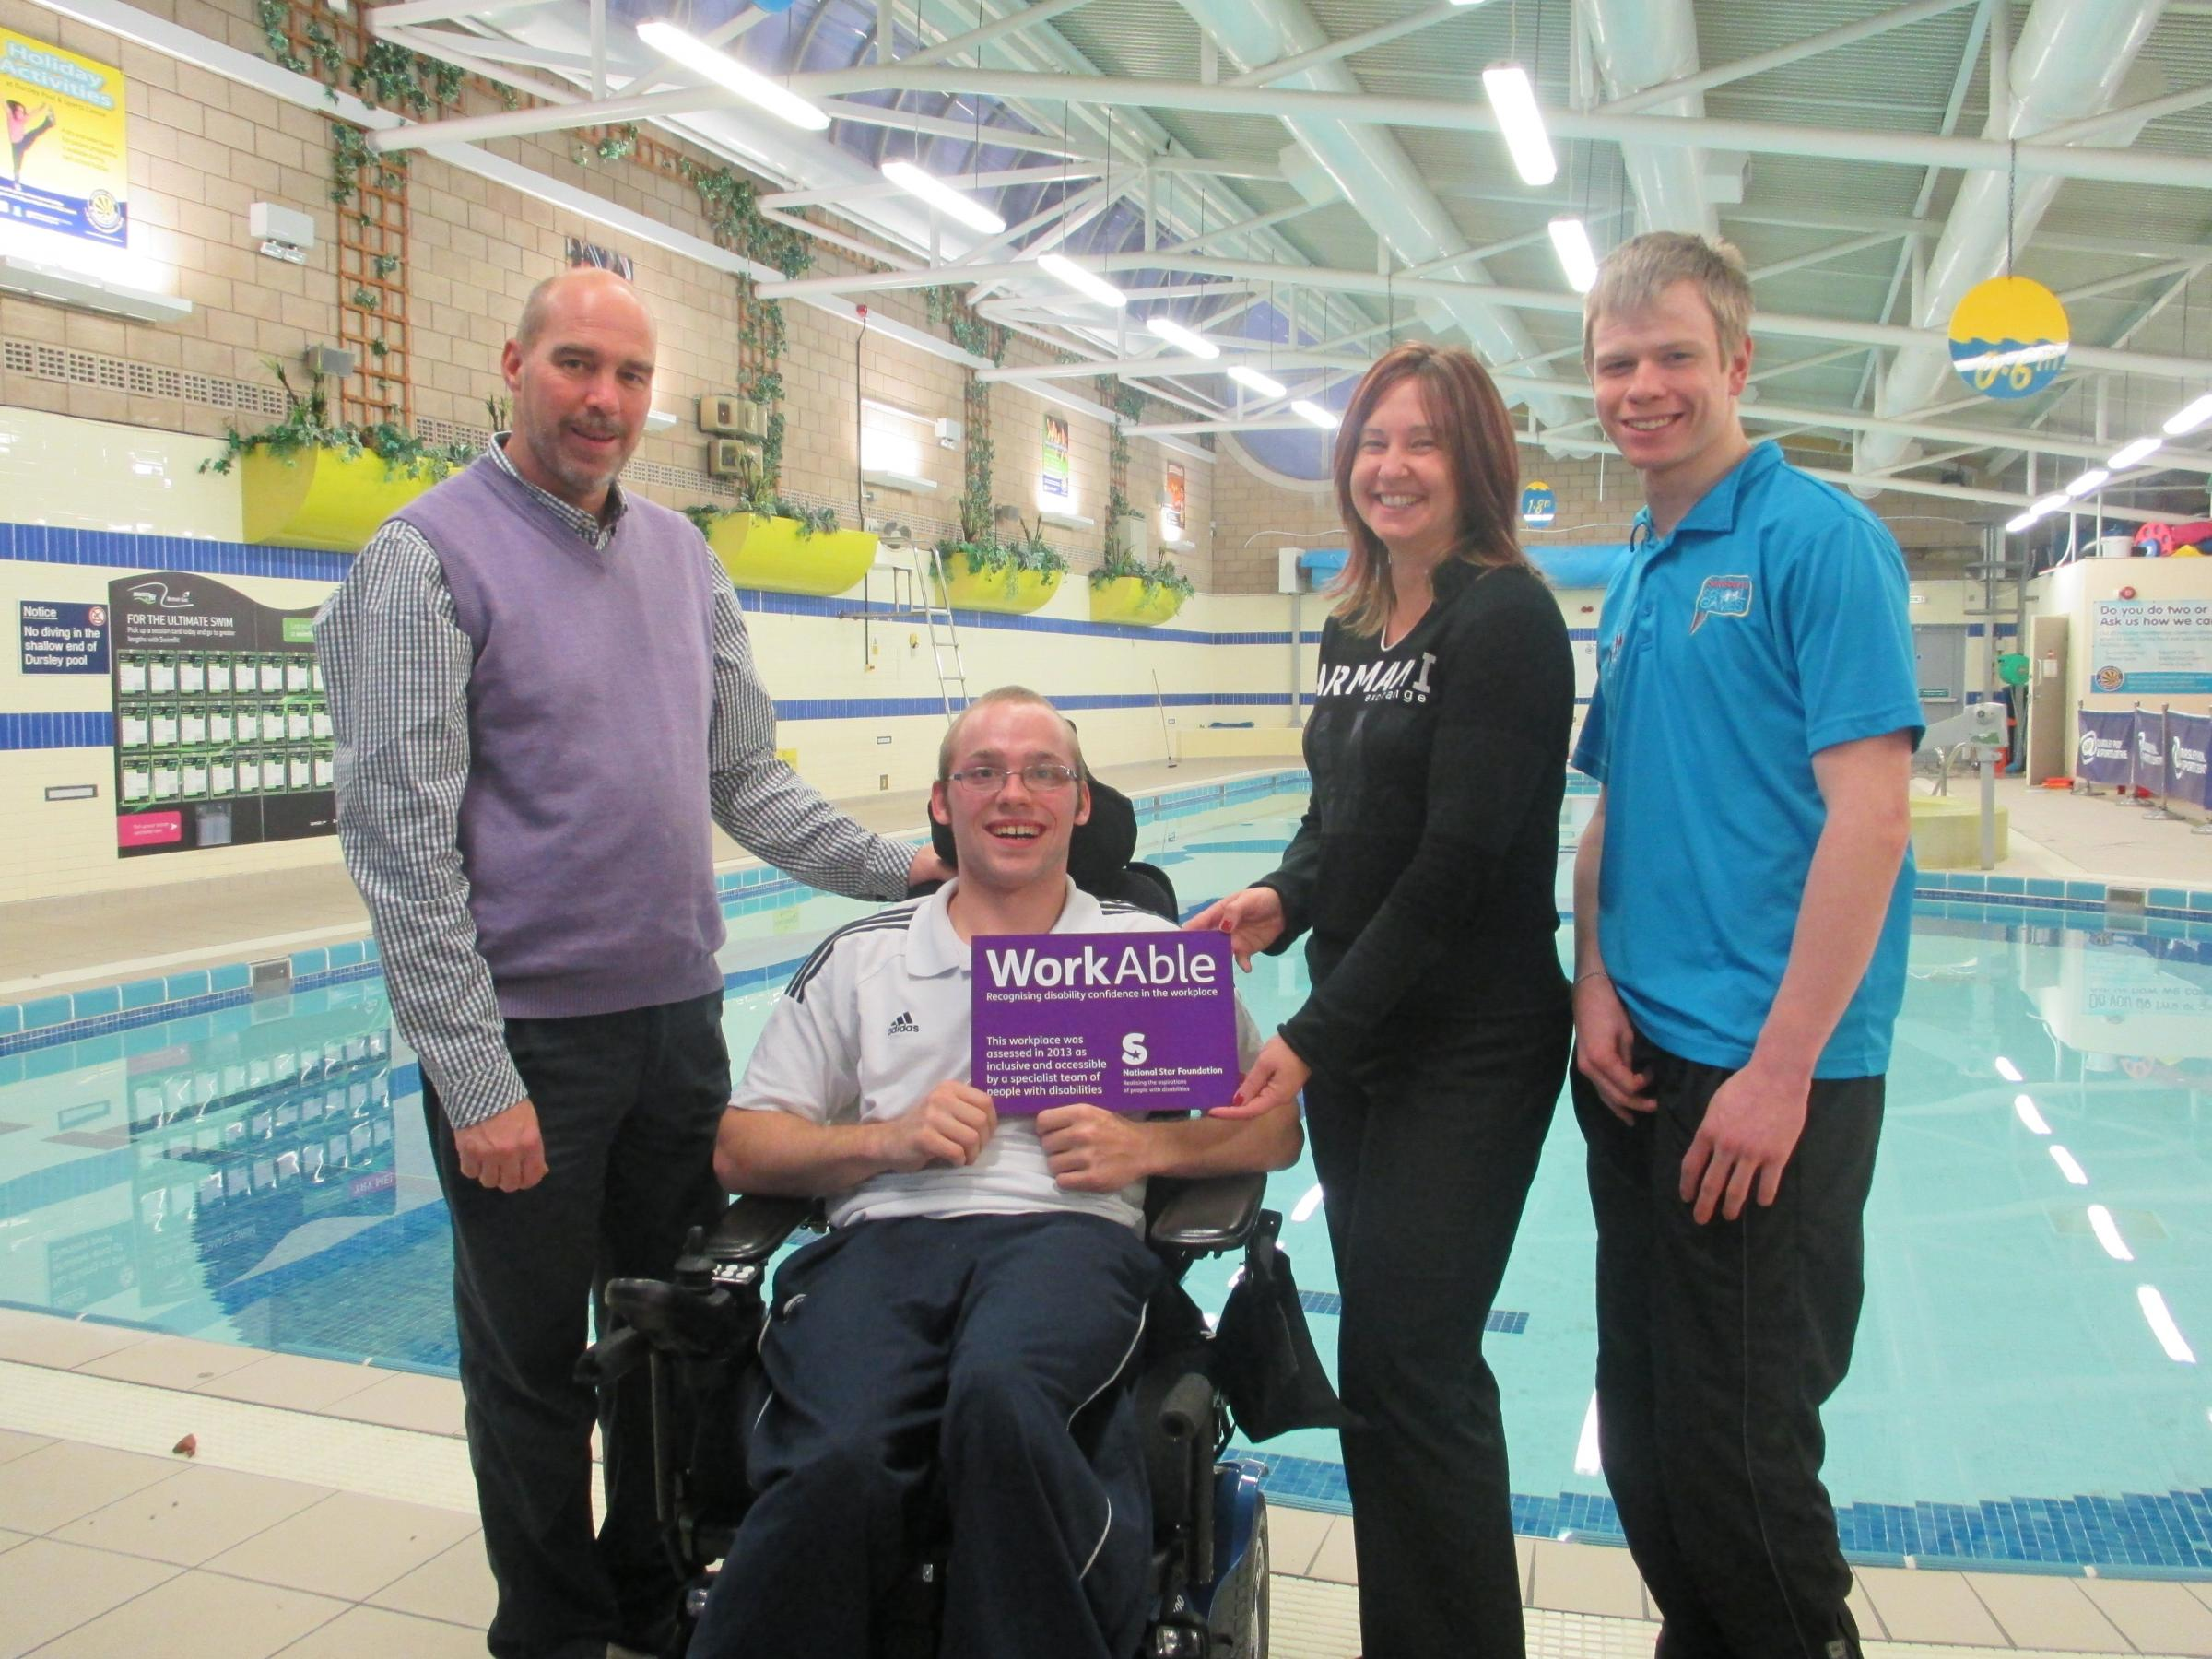 From left, Richard Brand, sports tutor from National Star College with students Jason Ward and Liam Jones, with Dursley Swimming Pool manager Angela Gillingham